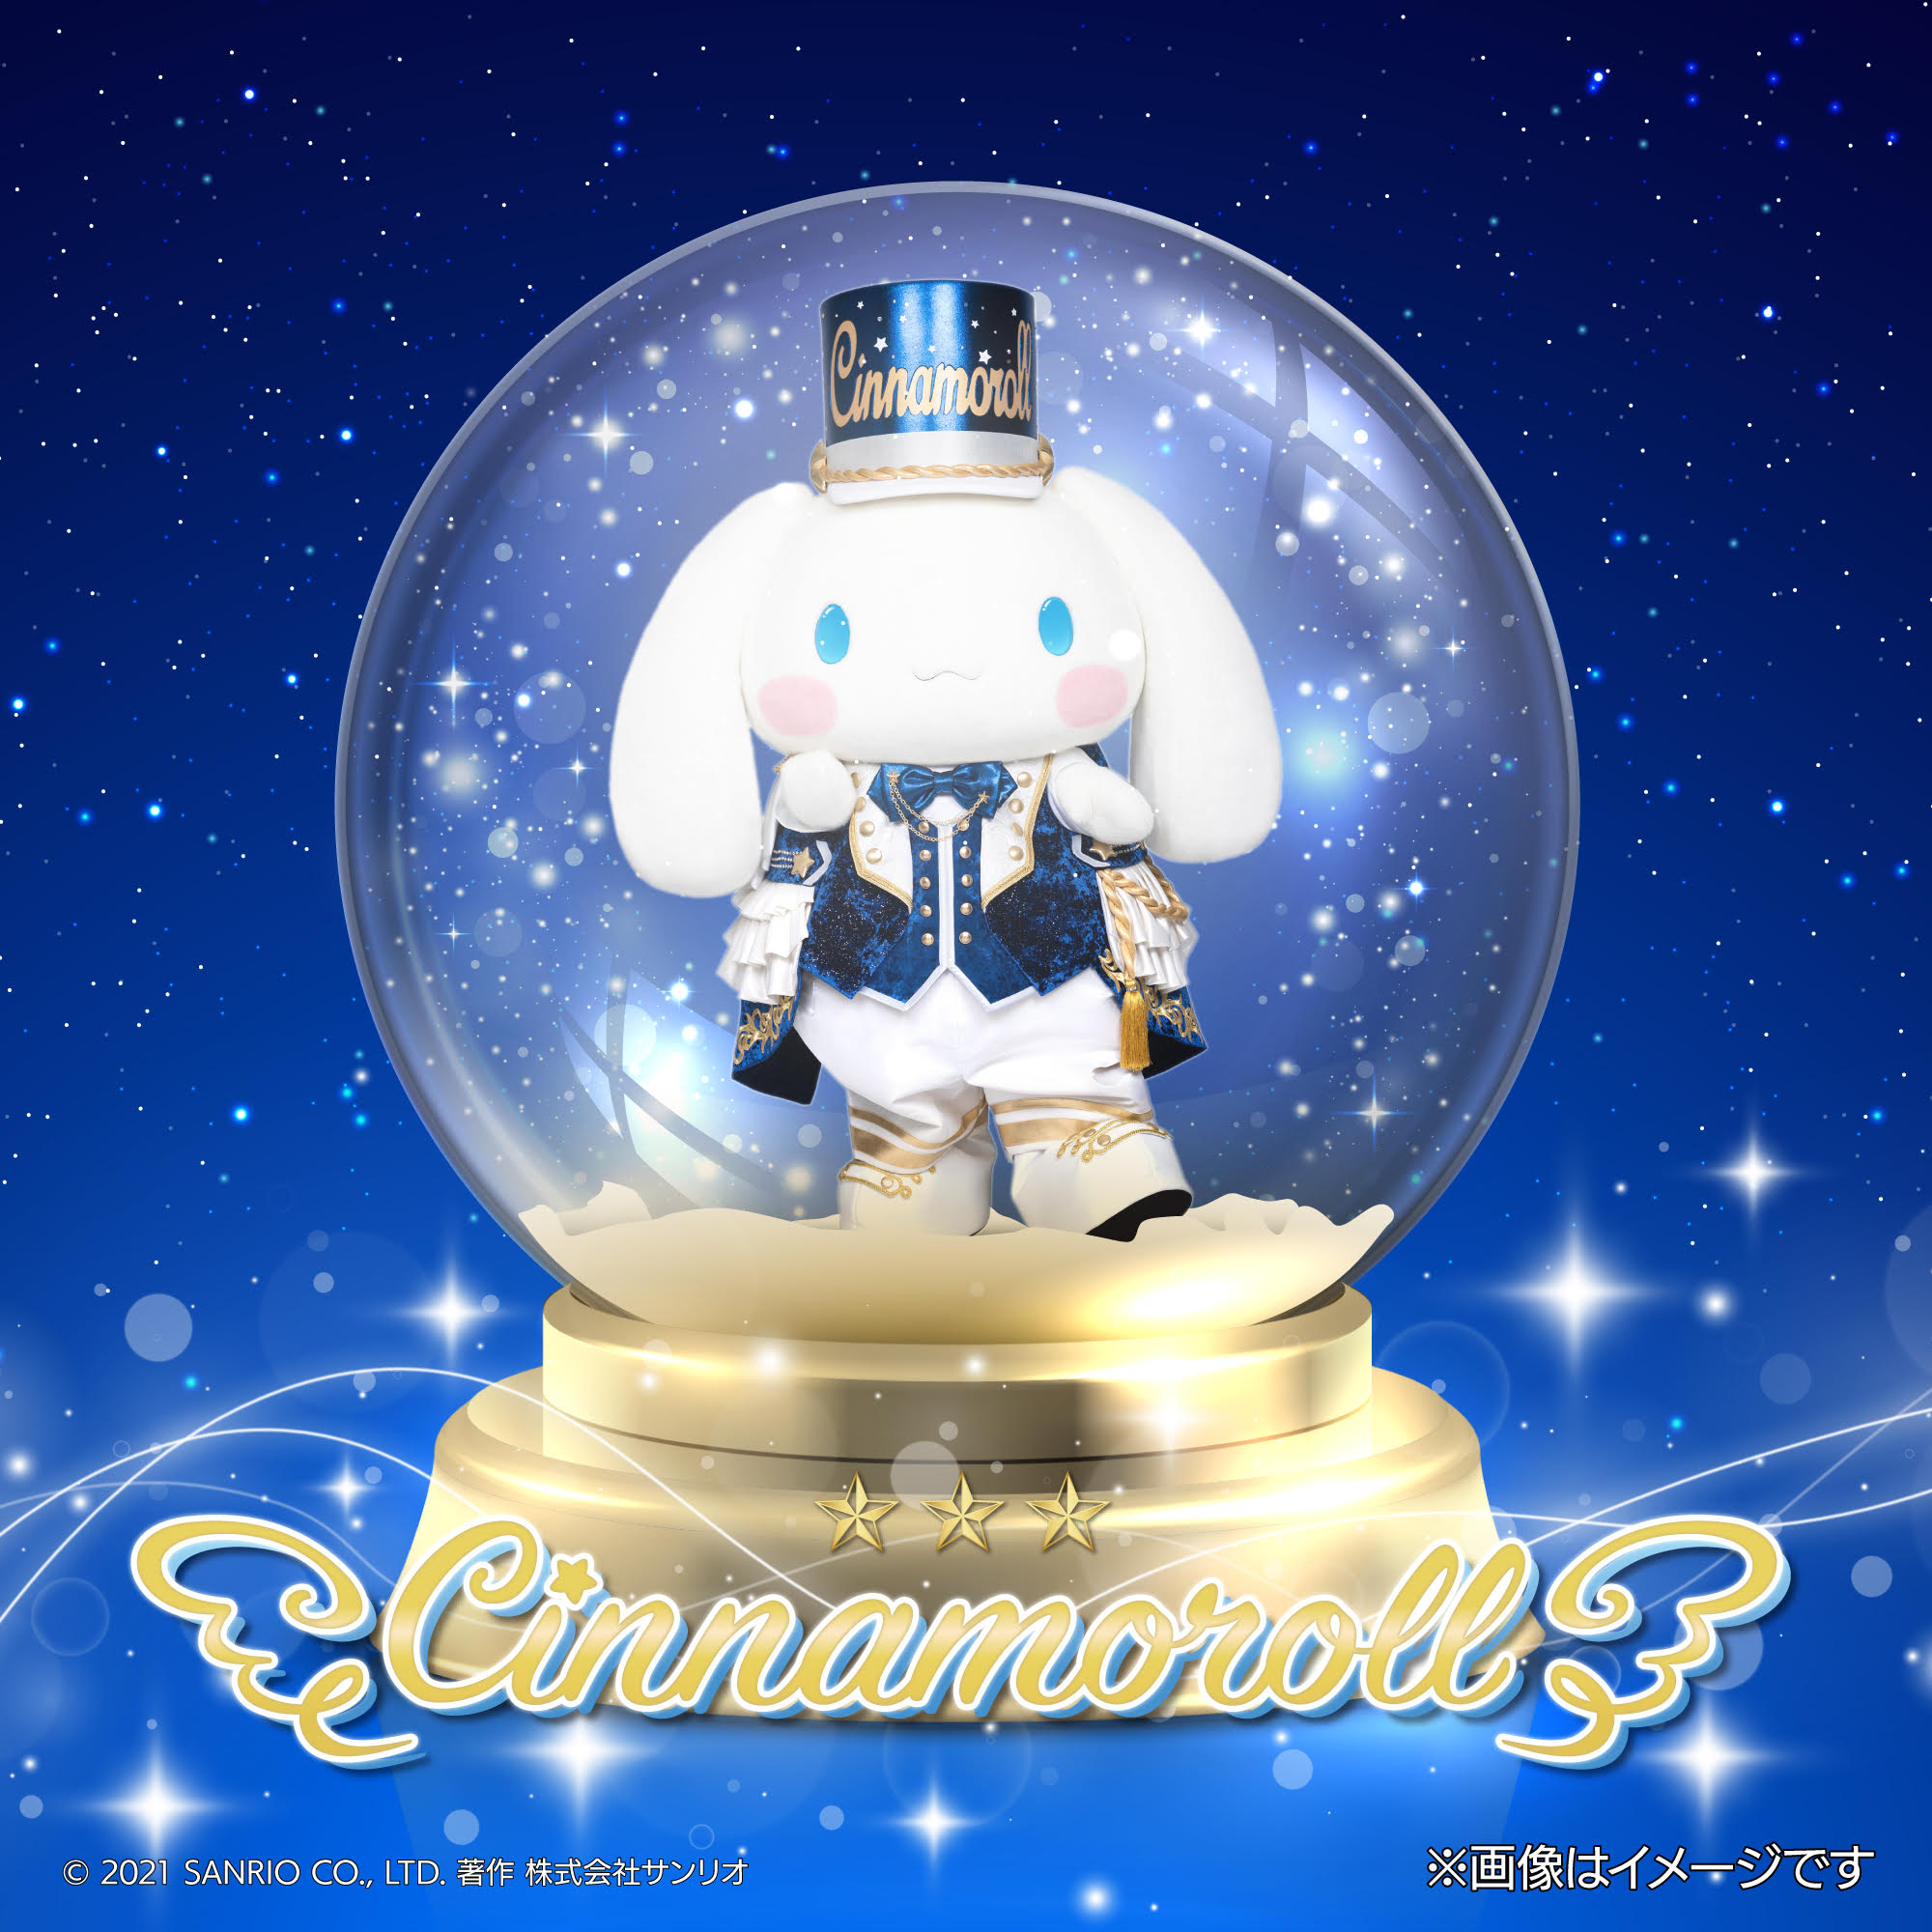 """Cinnamoroll """"Star dome"""" Normal Edition (CD Only) Release in November 4th 2021"""